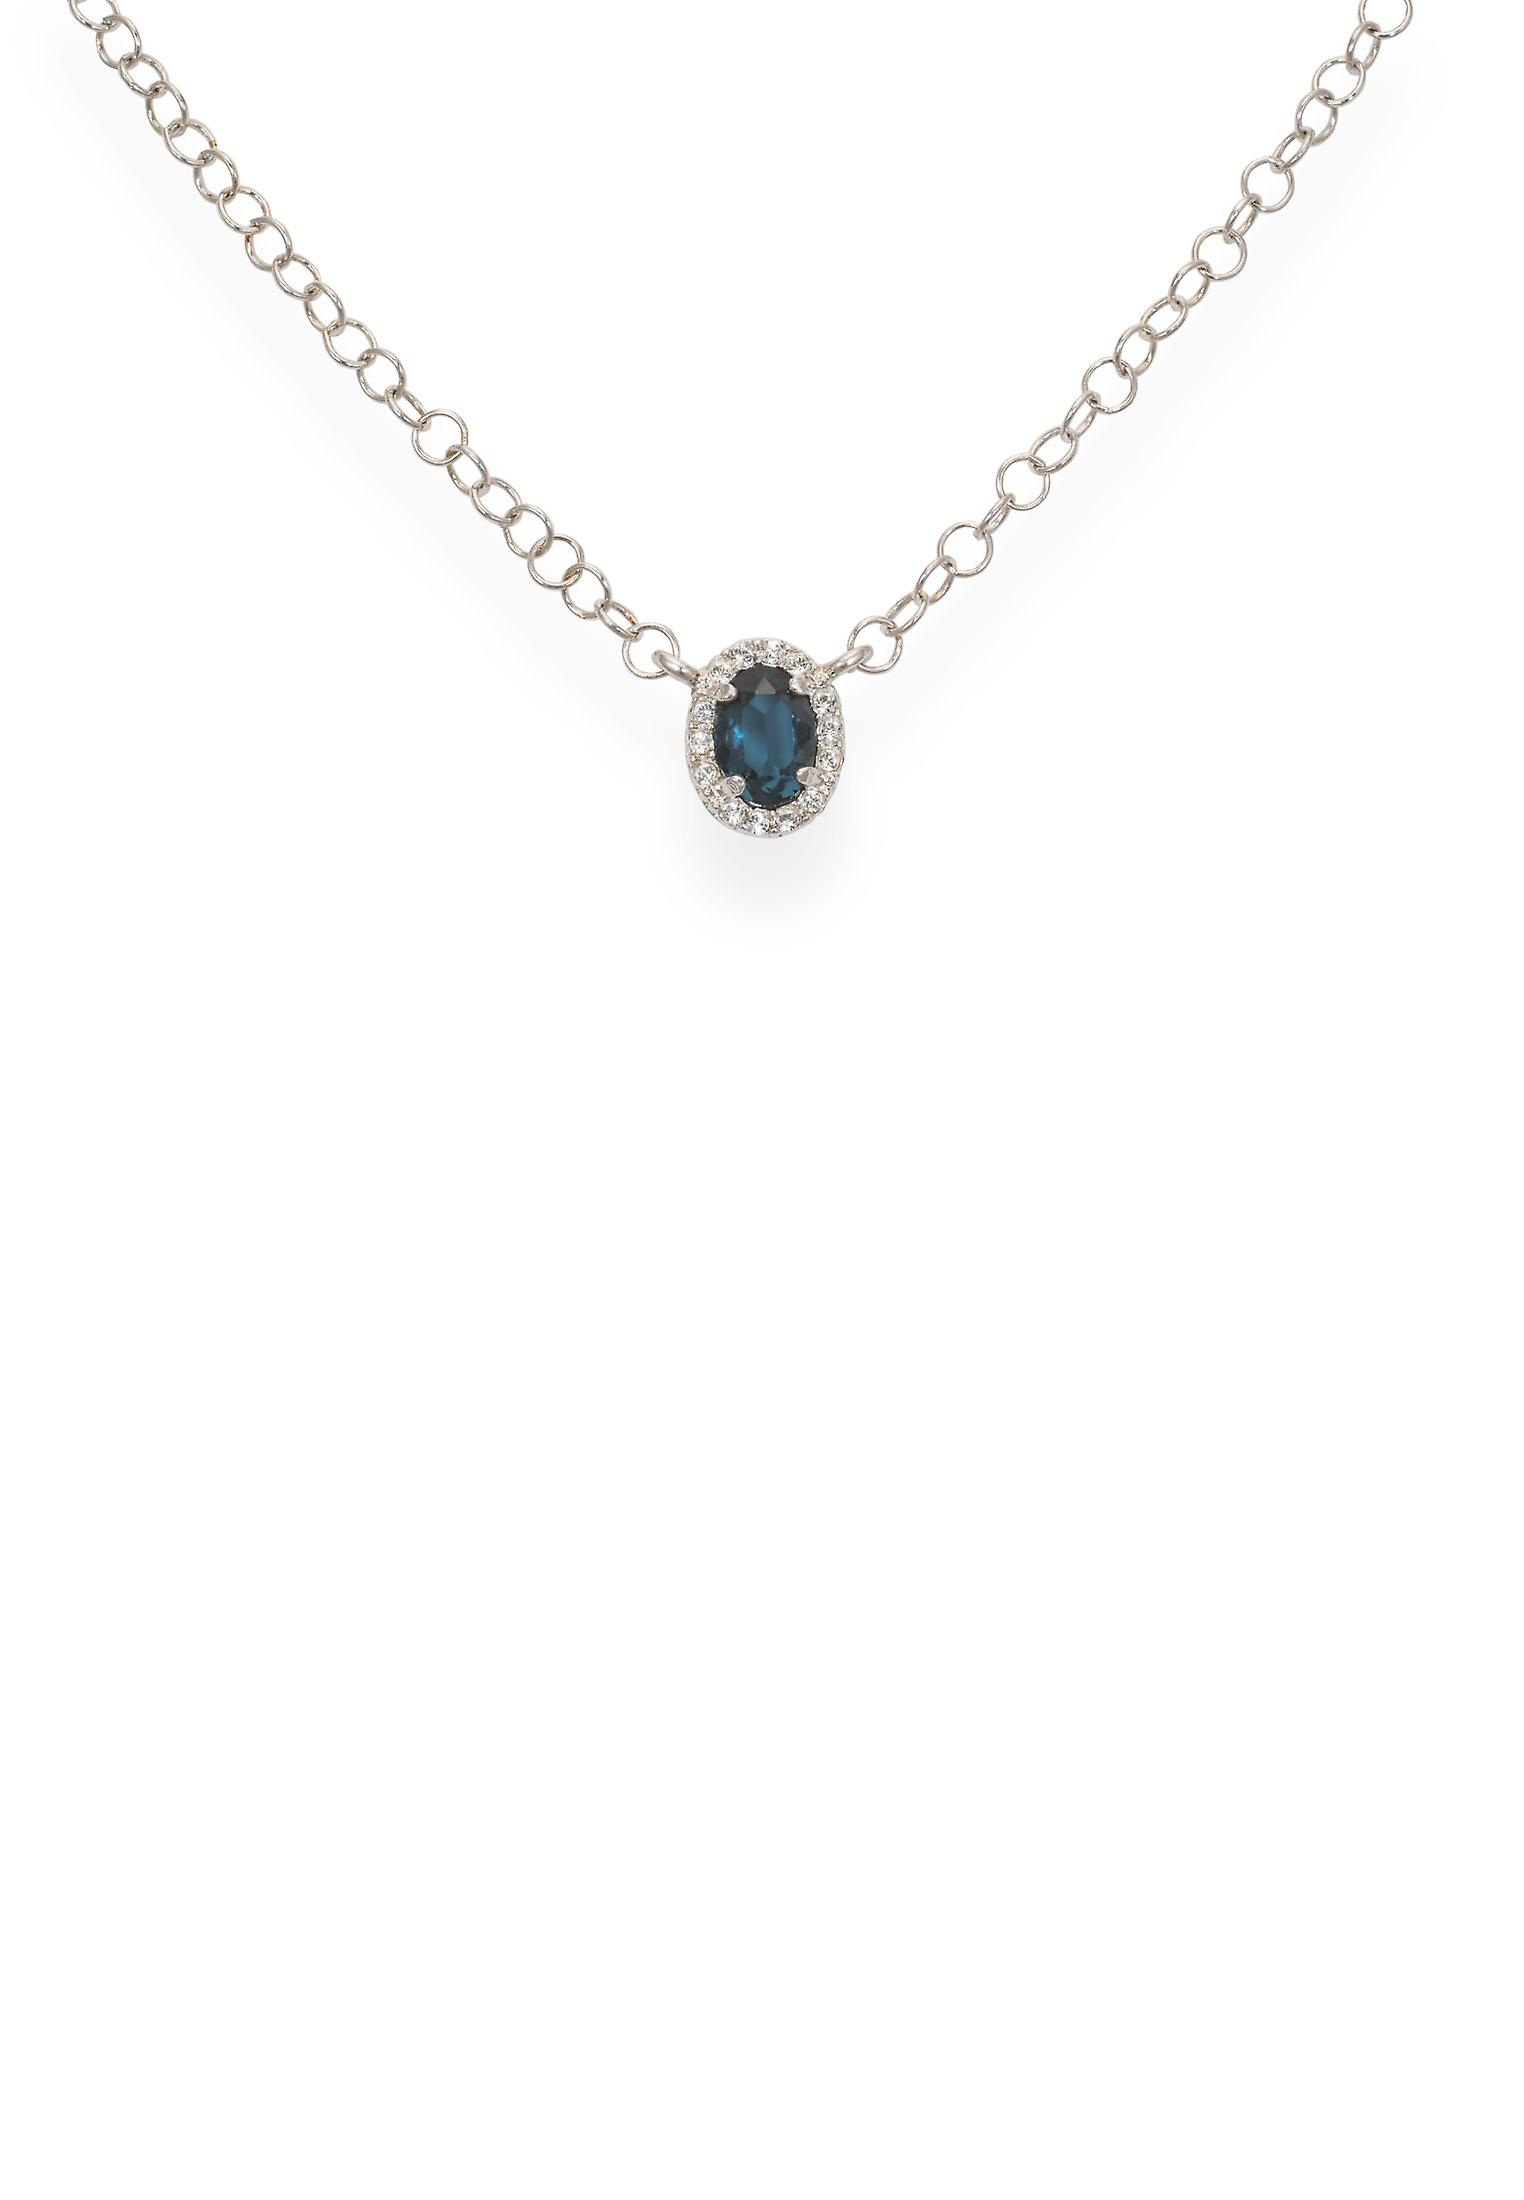 Blue pendant with crystals from Swarovski 9265